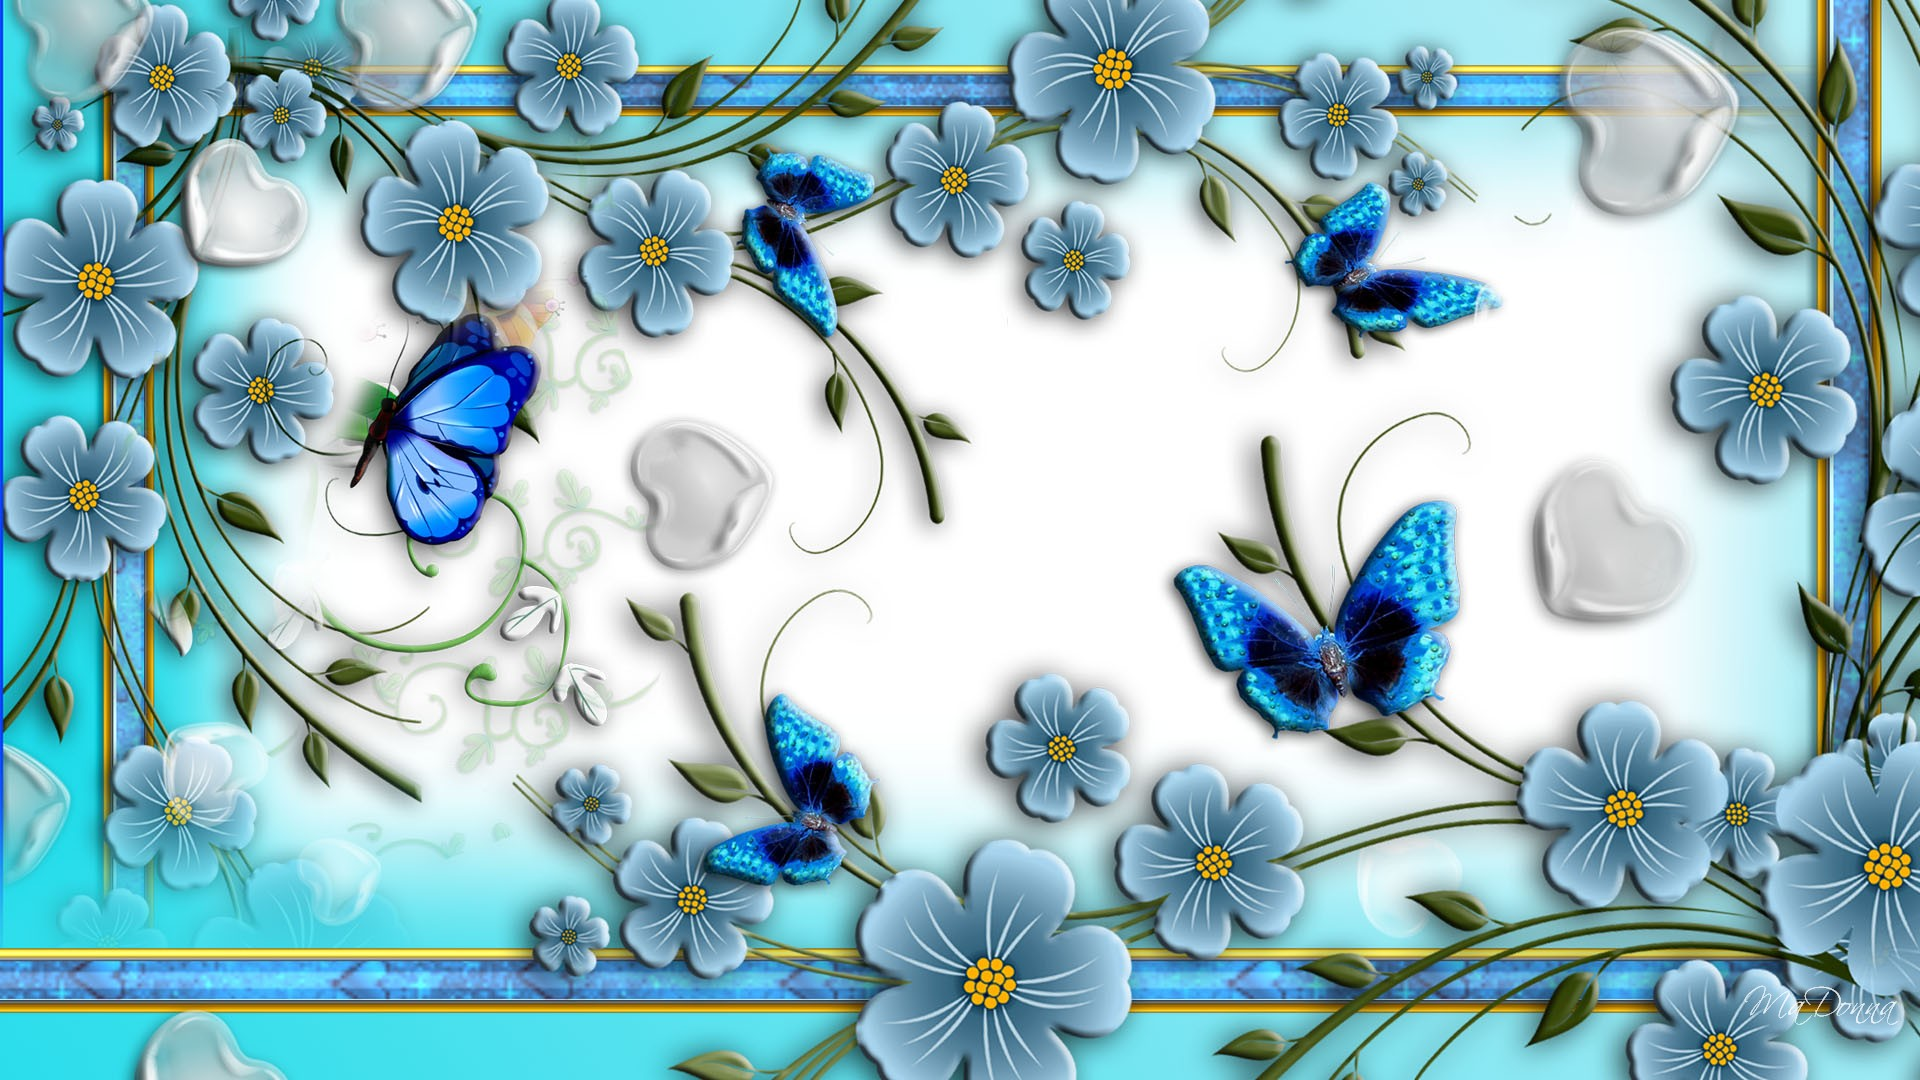 Download Blue Butterflies On Abstract Flowers HD Wallpapers 1920x1080